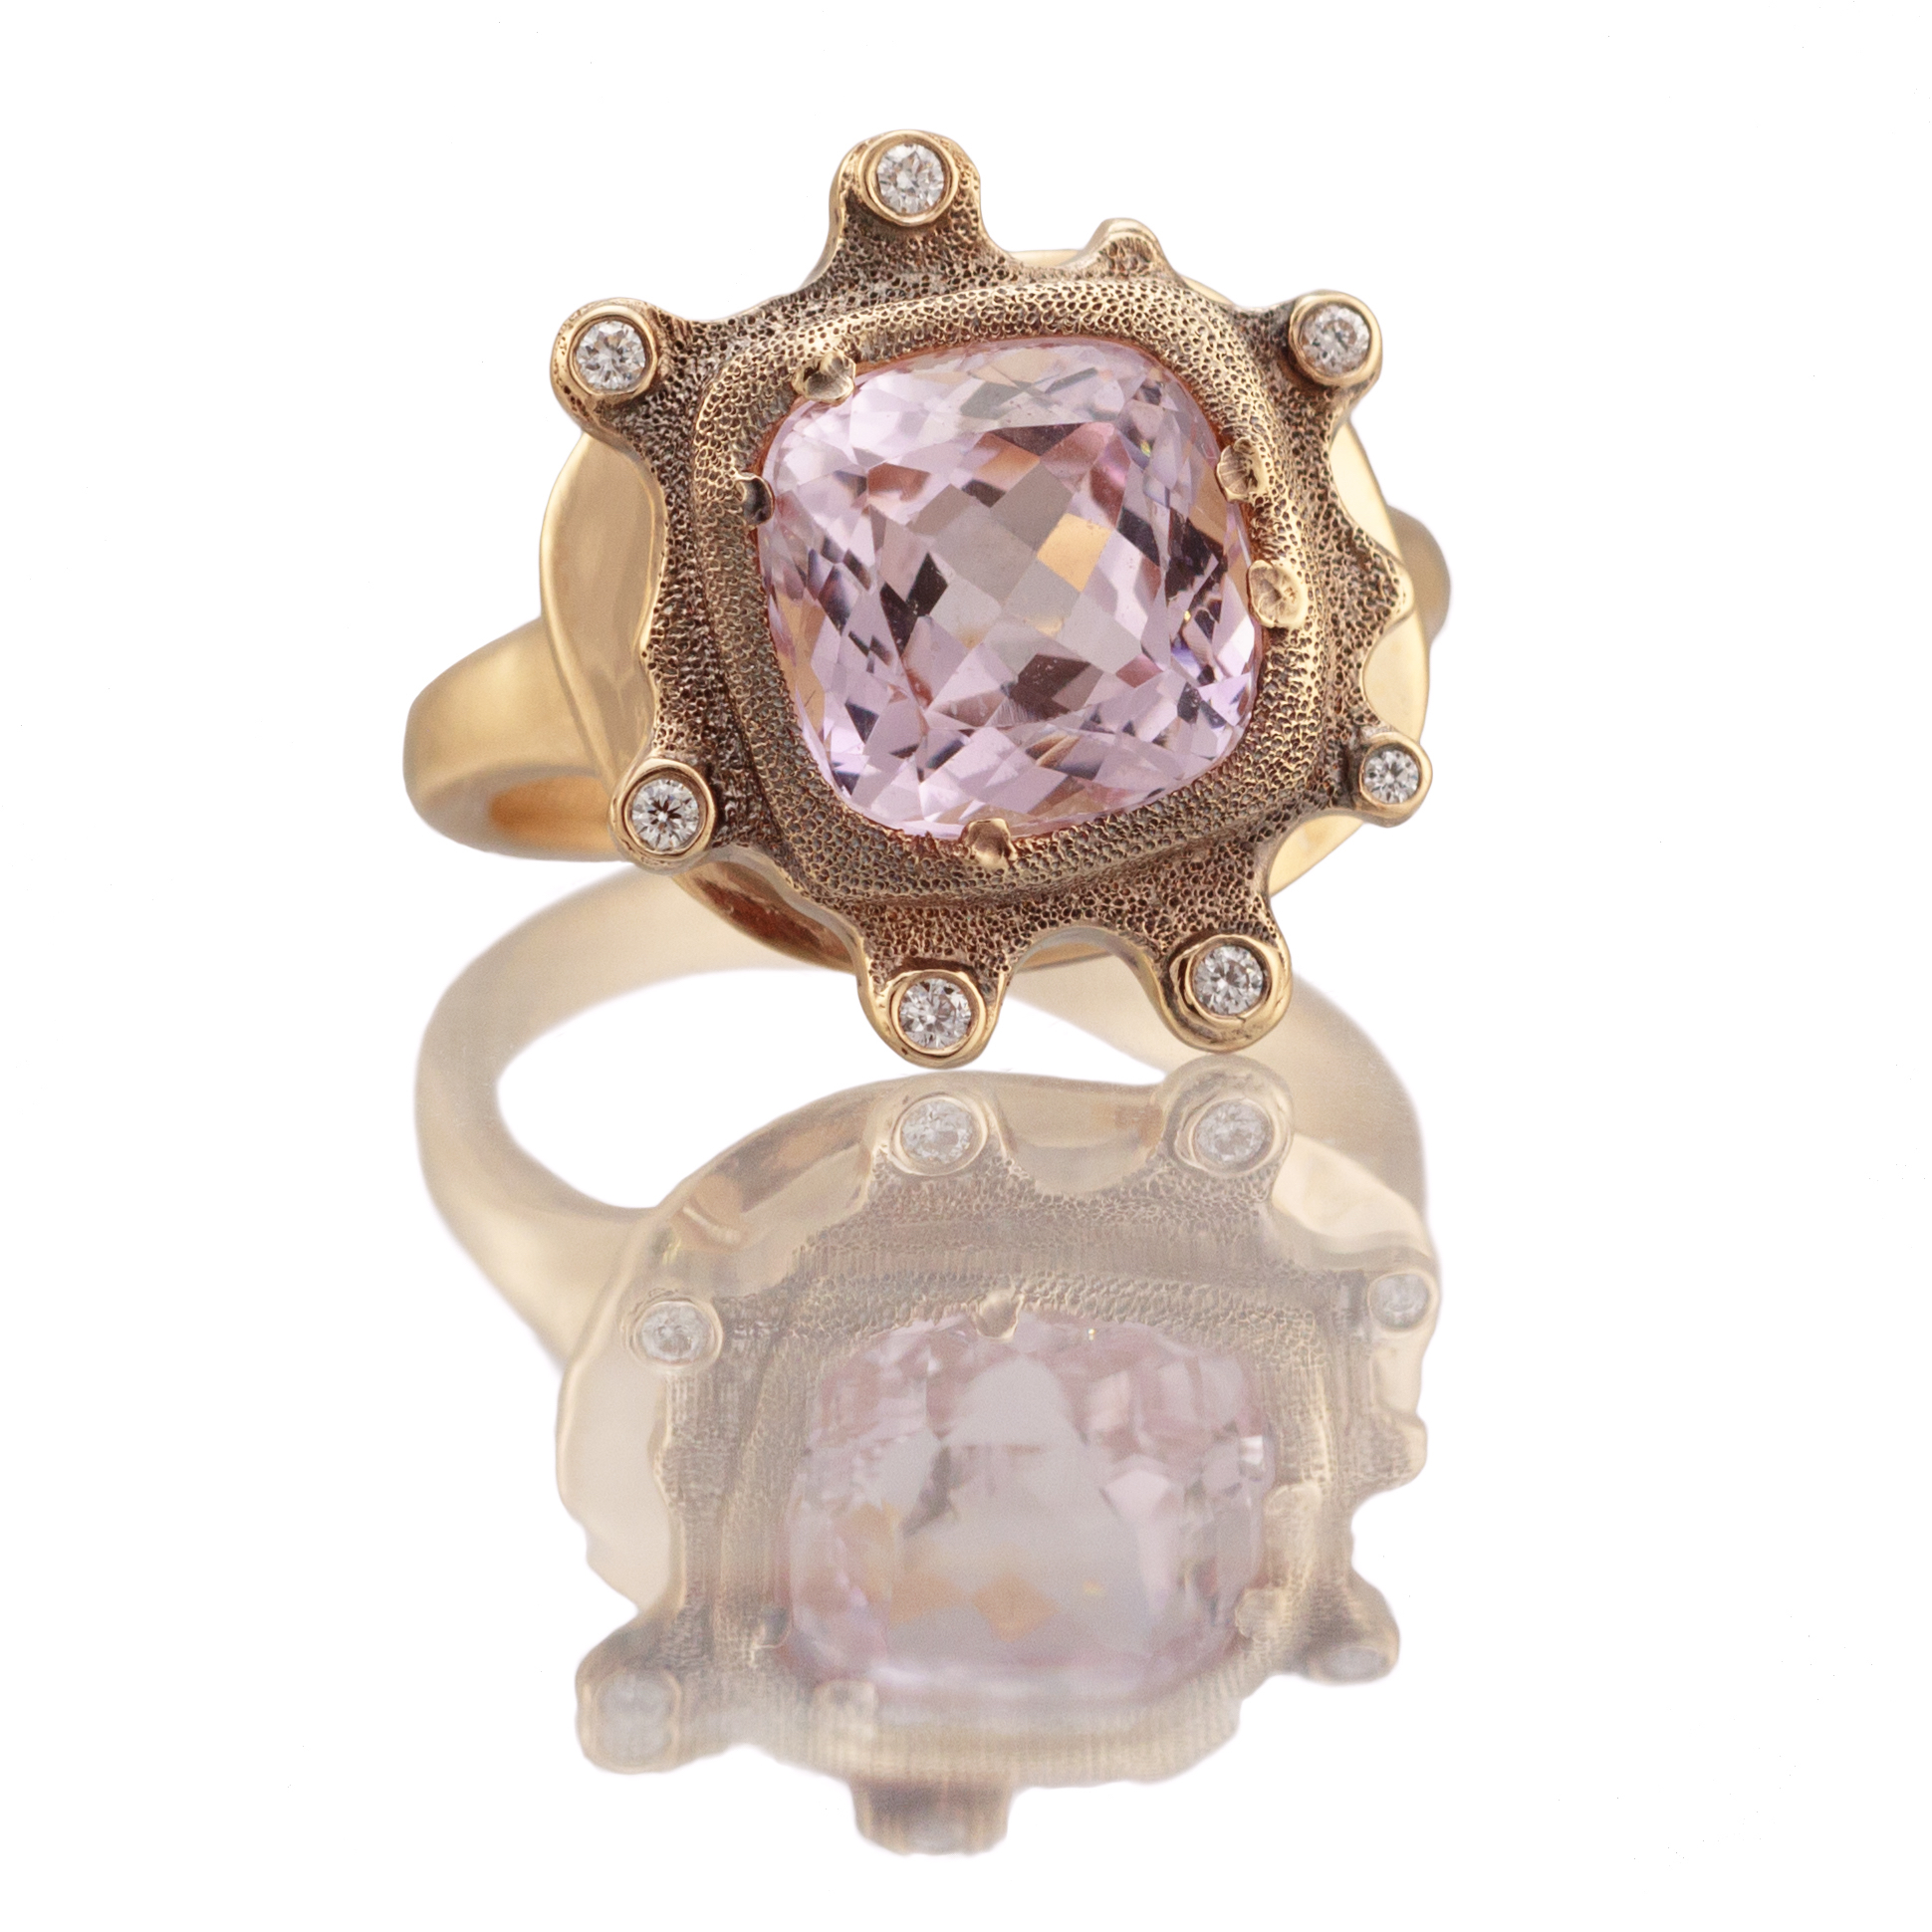 Petals. 4.39ct. Morganite, 18K yellow gold and white diamond ring